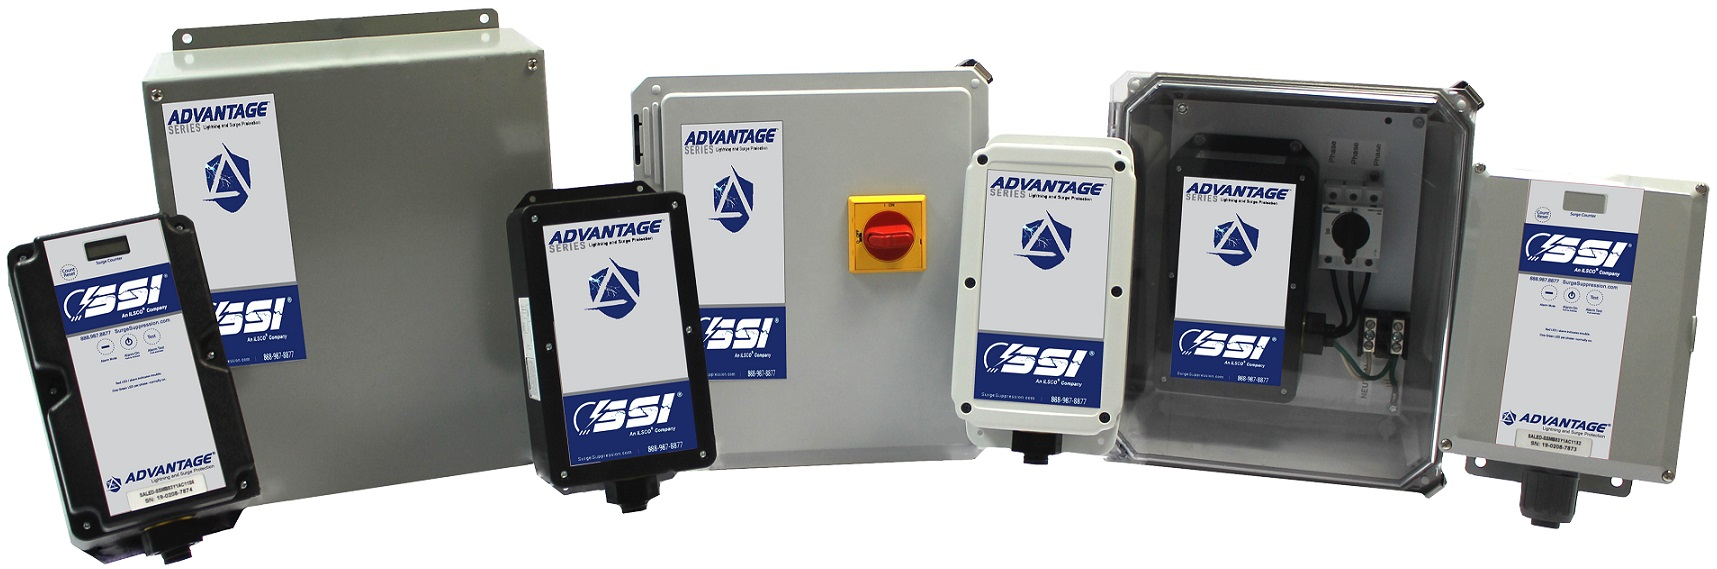 High Performance Access Control Panel 3-Phase Surge Suppressors. Get the Right Gear!